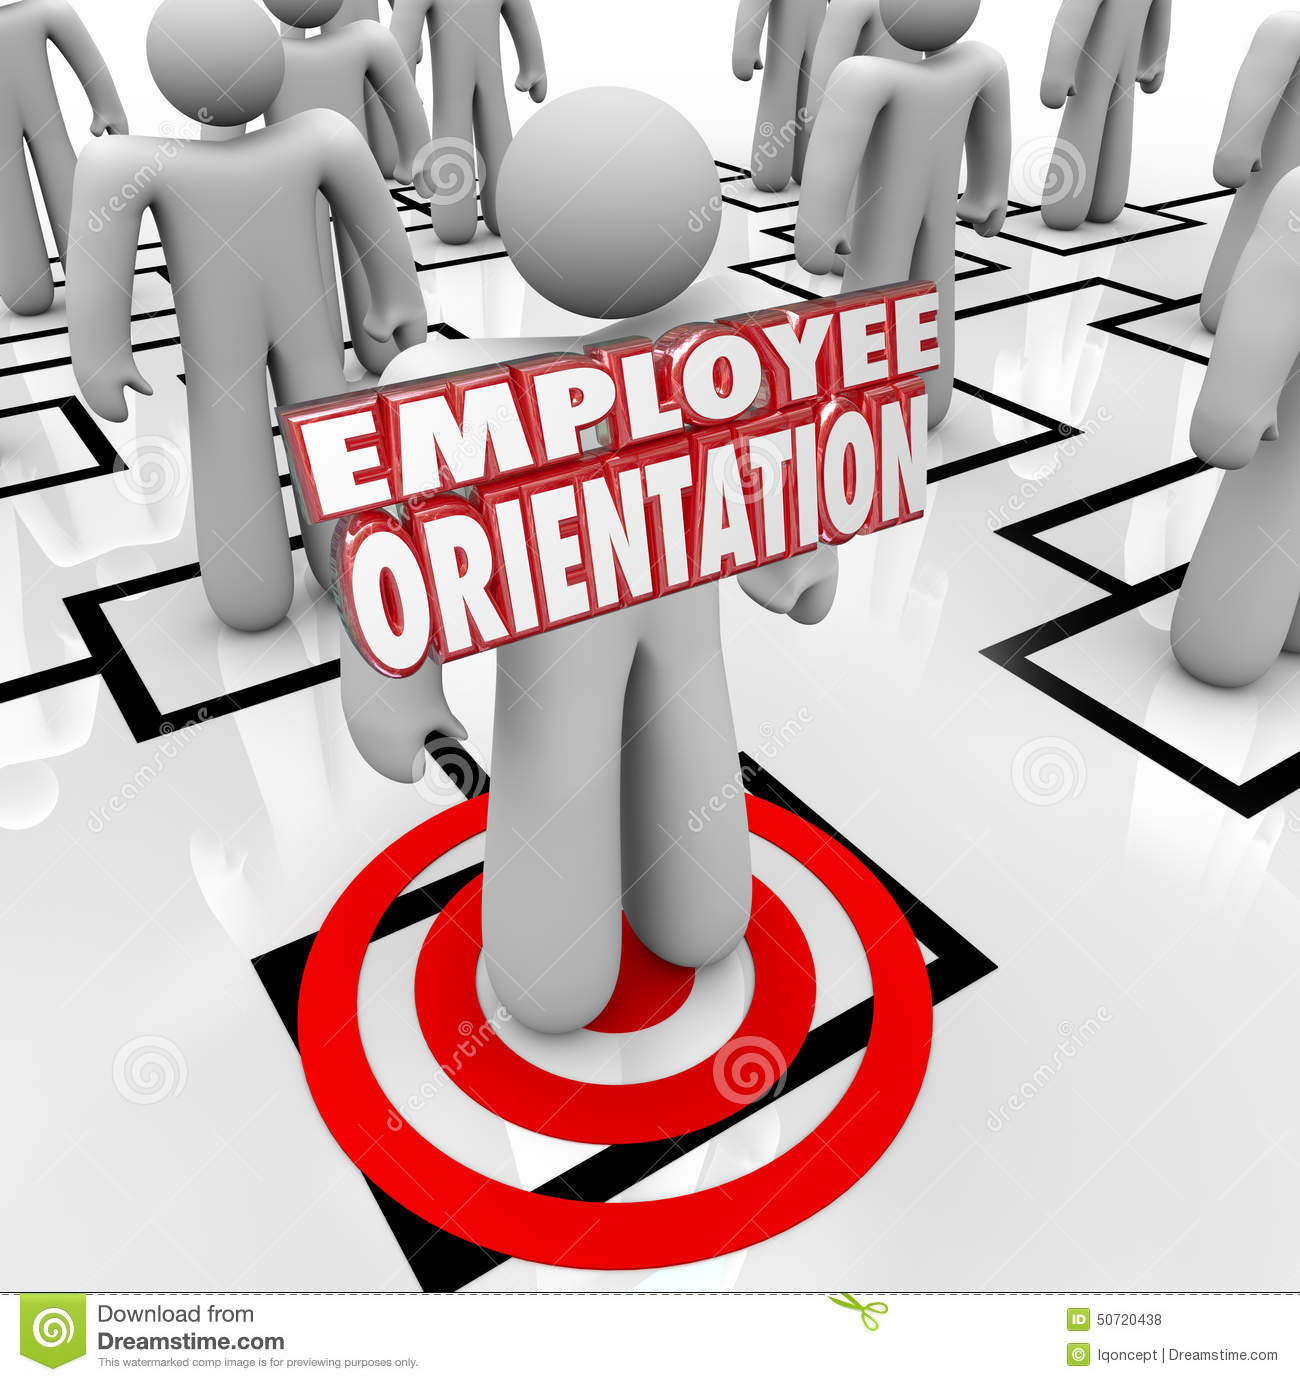 Employee Orientation Words On A New Worker Standing On An Organization